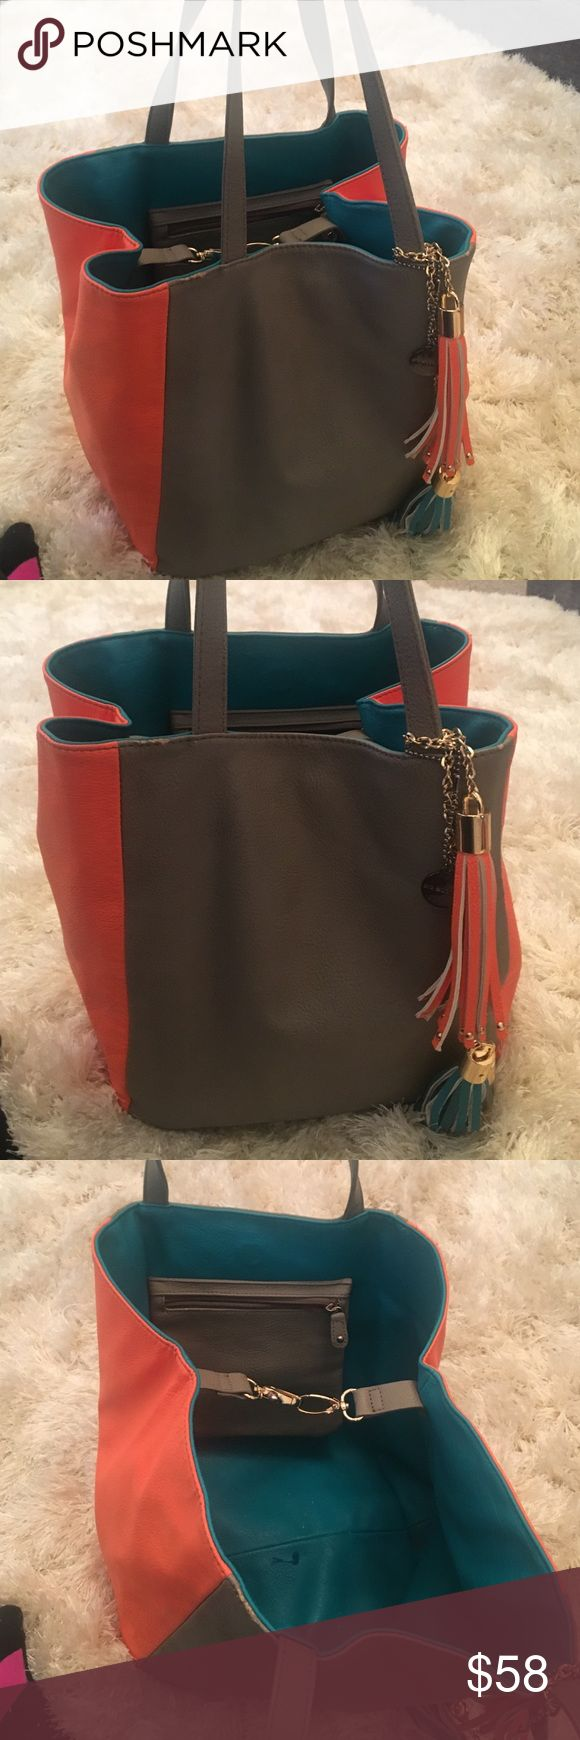 Beautiful big Buddha bag in perfect condition This bag is amazing can make it medium or large it's Spacy  beautiful colors tassels and gold accents Big Buddha Bags Shoulder Bags